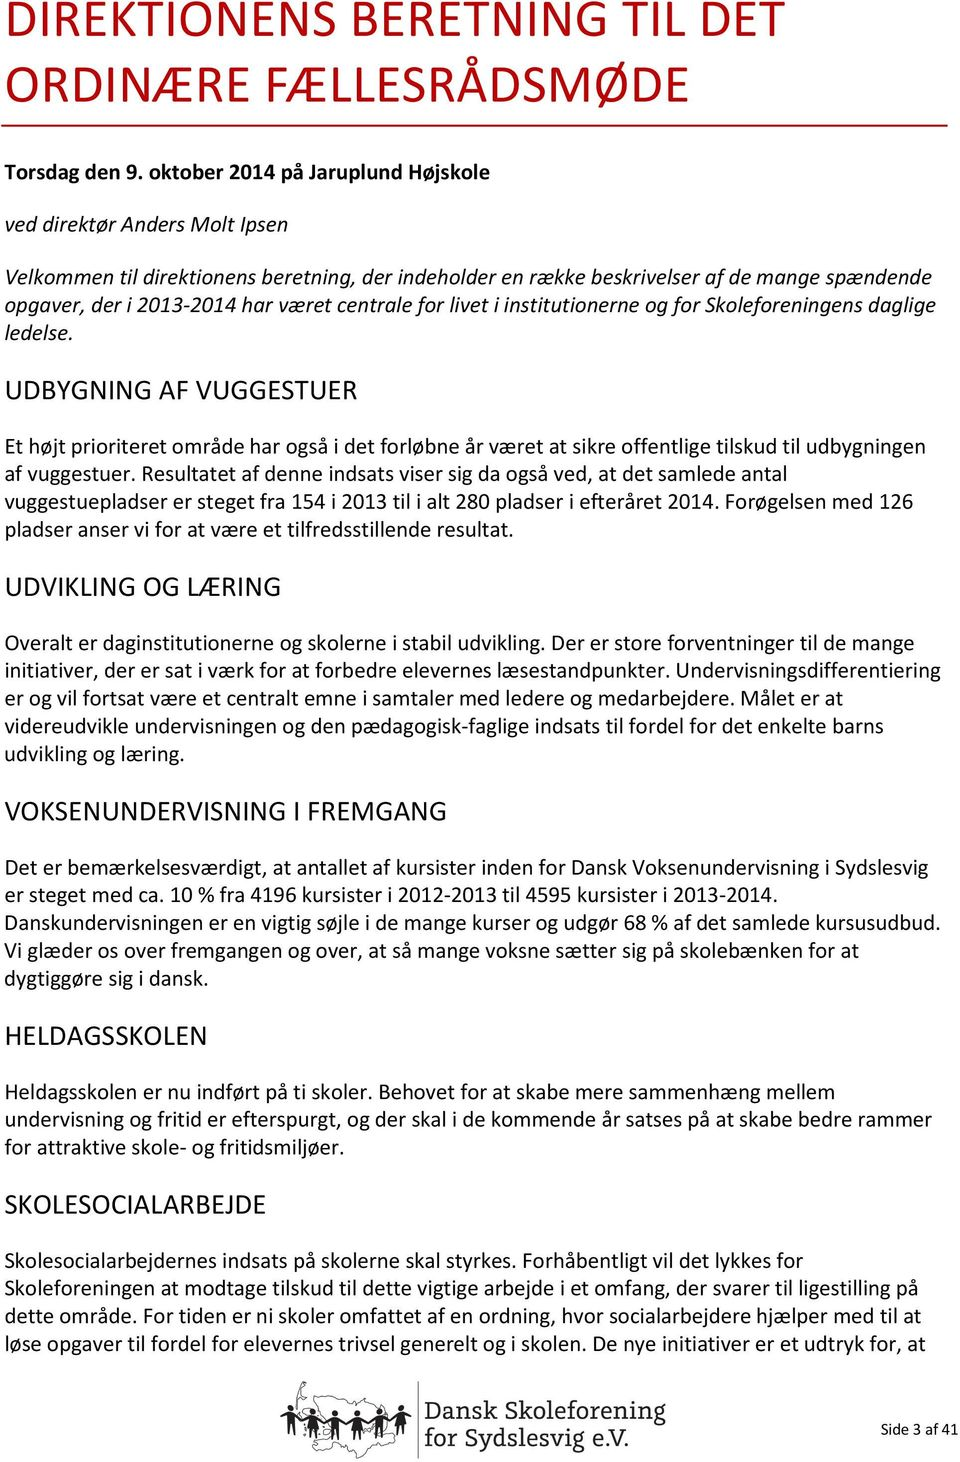 centrale for livet i institutionerne og for Skoleforeningens daglige ledelse.